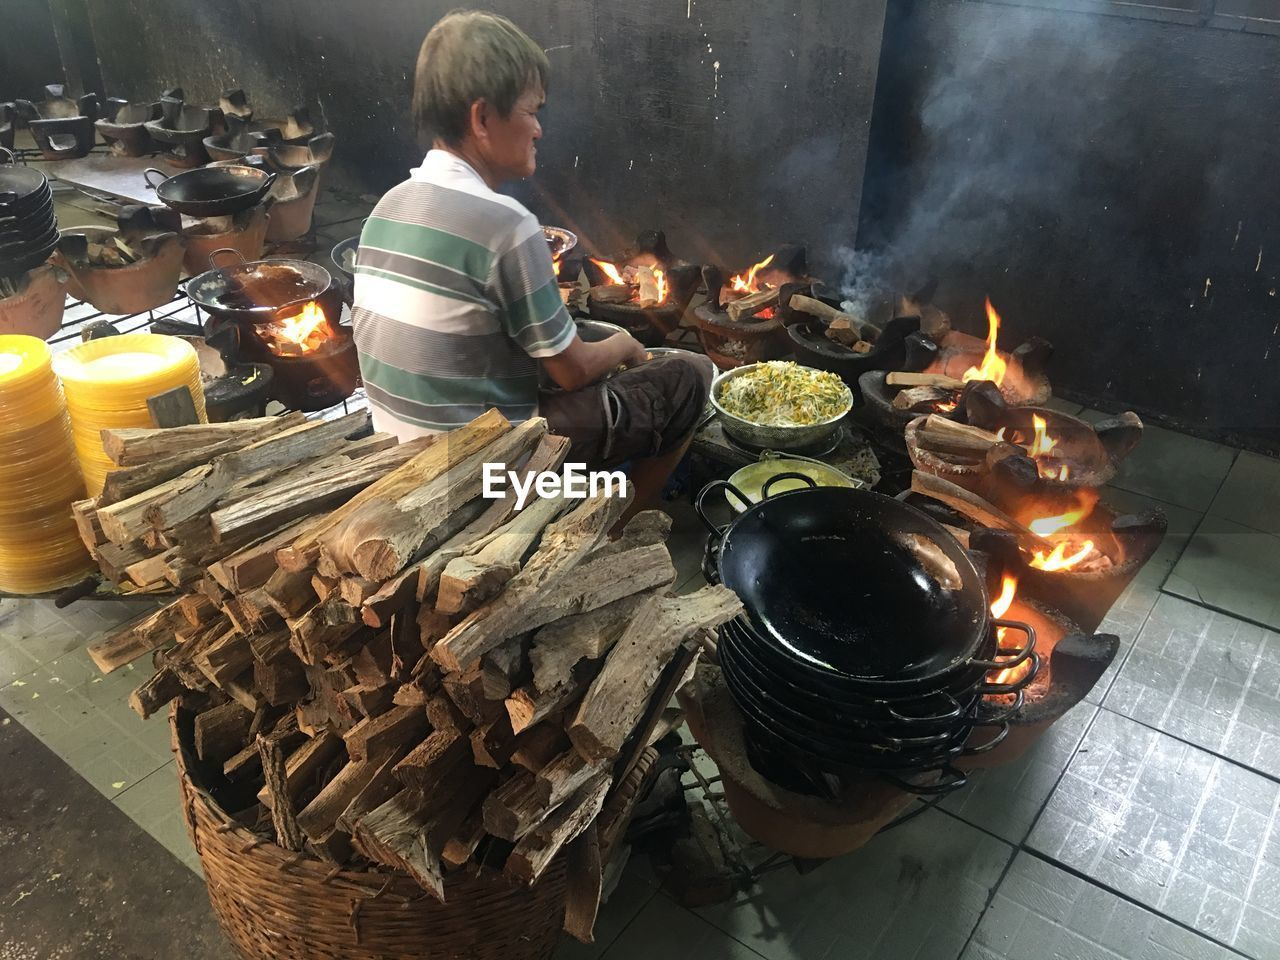 burning, heat - temperature, fire, real people, fire - natural phenomenon, flame, food, food and drink, one person, preparation, men, preparing food, nature, firewood, smoke - physical structure, wood - material, glowing, log, kitchen utensil